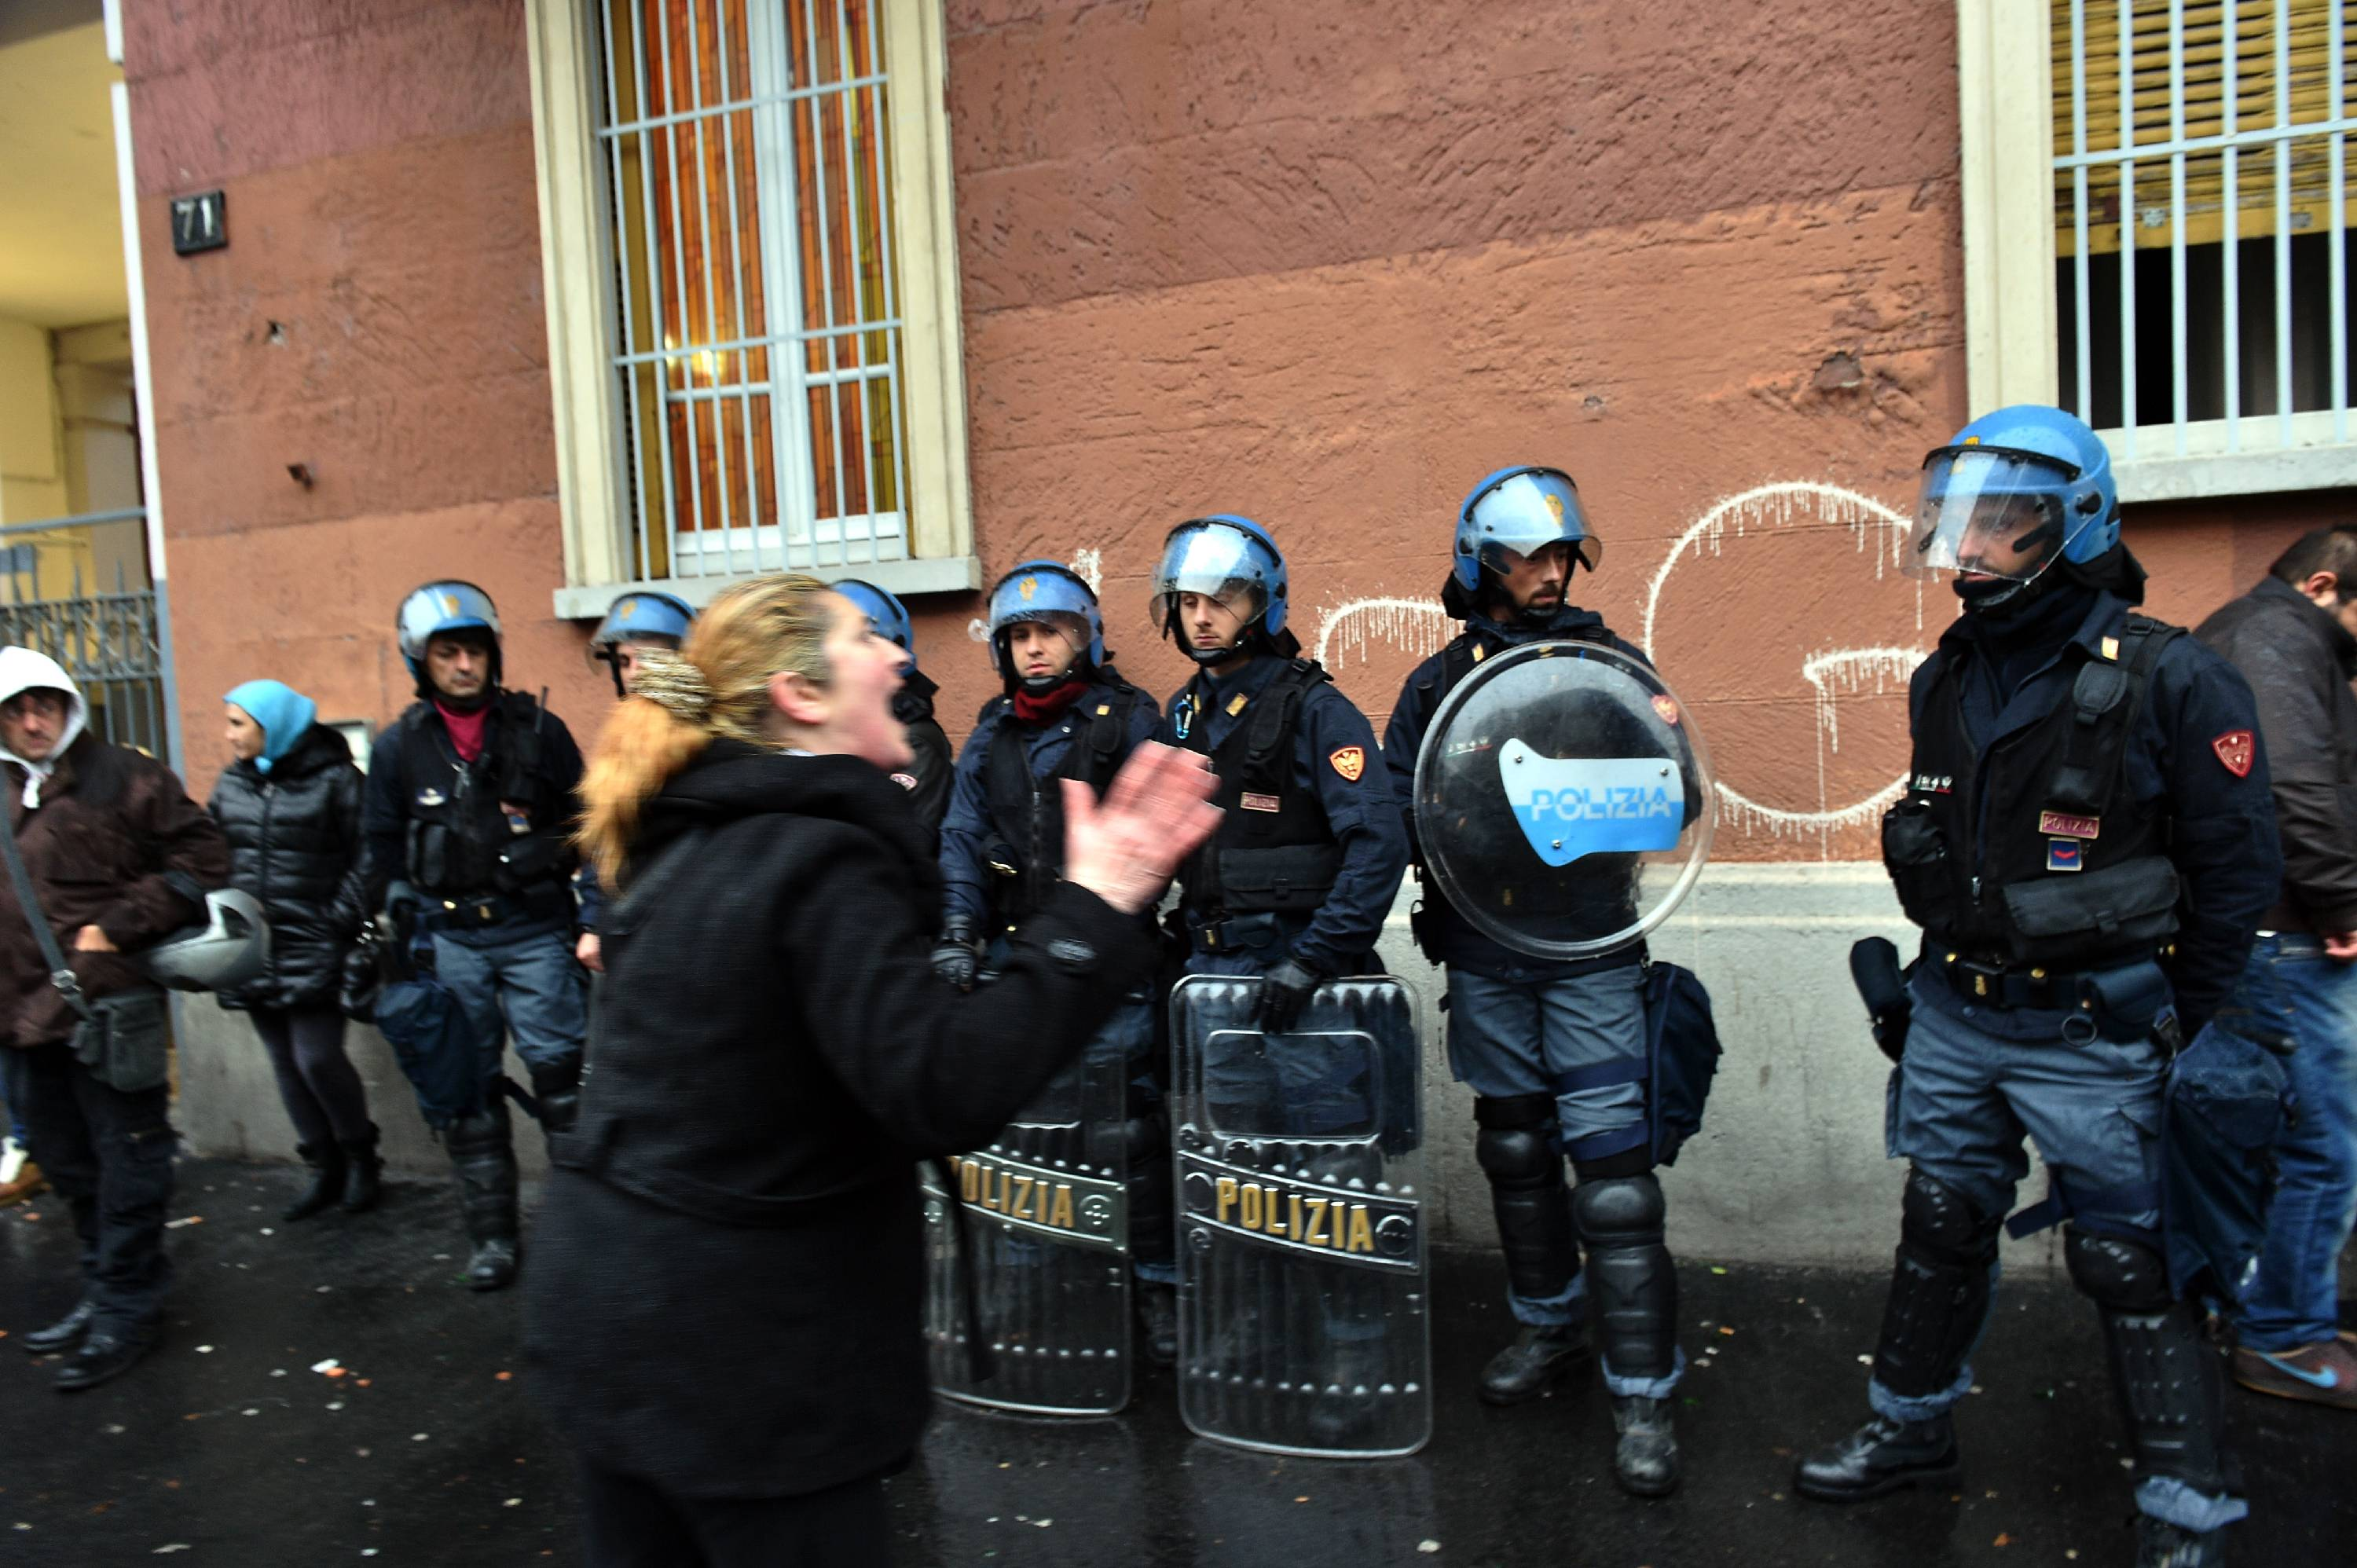 Sgombero casa occupata polizia aggredita for Prova dello specchio polizia youtube